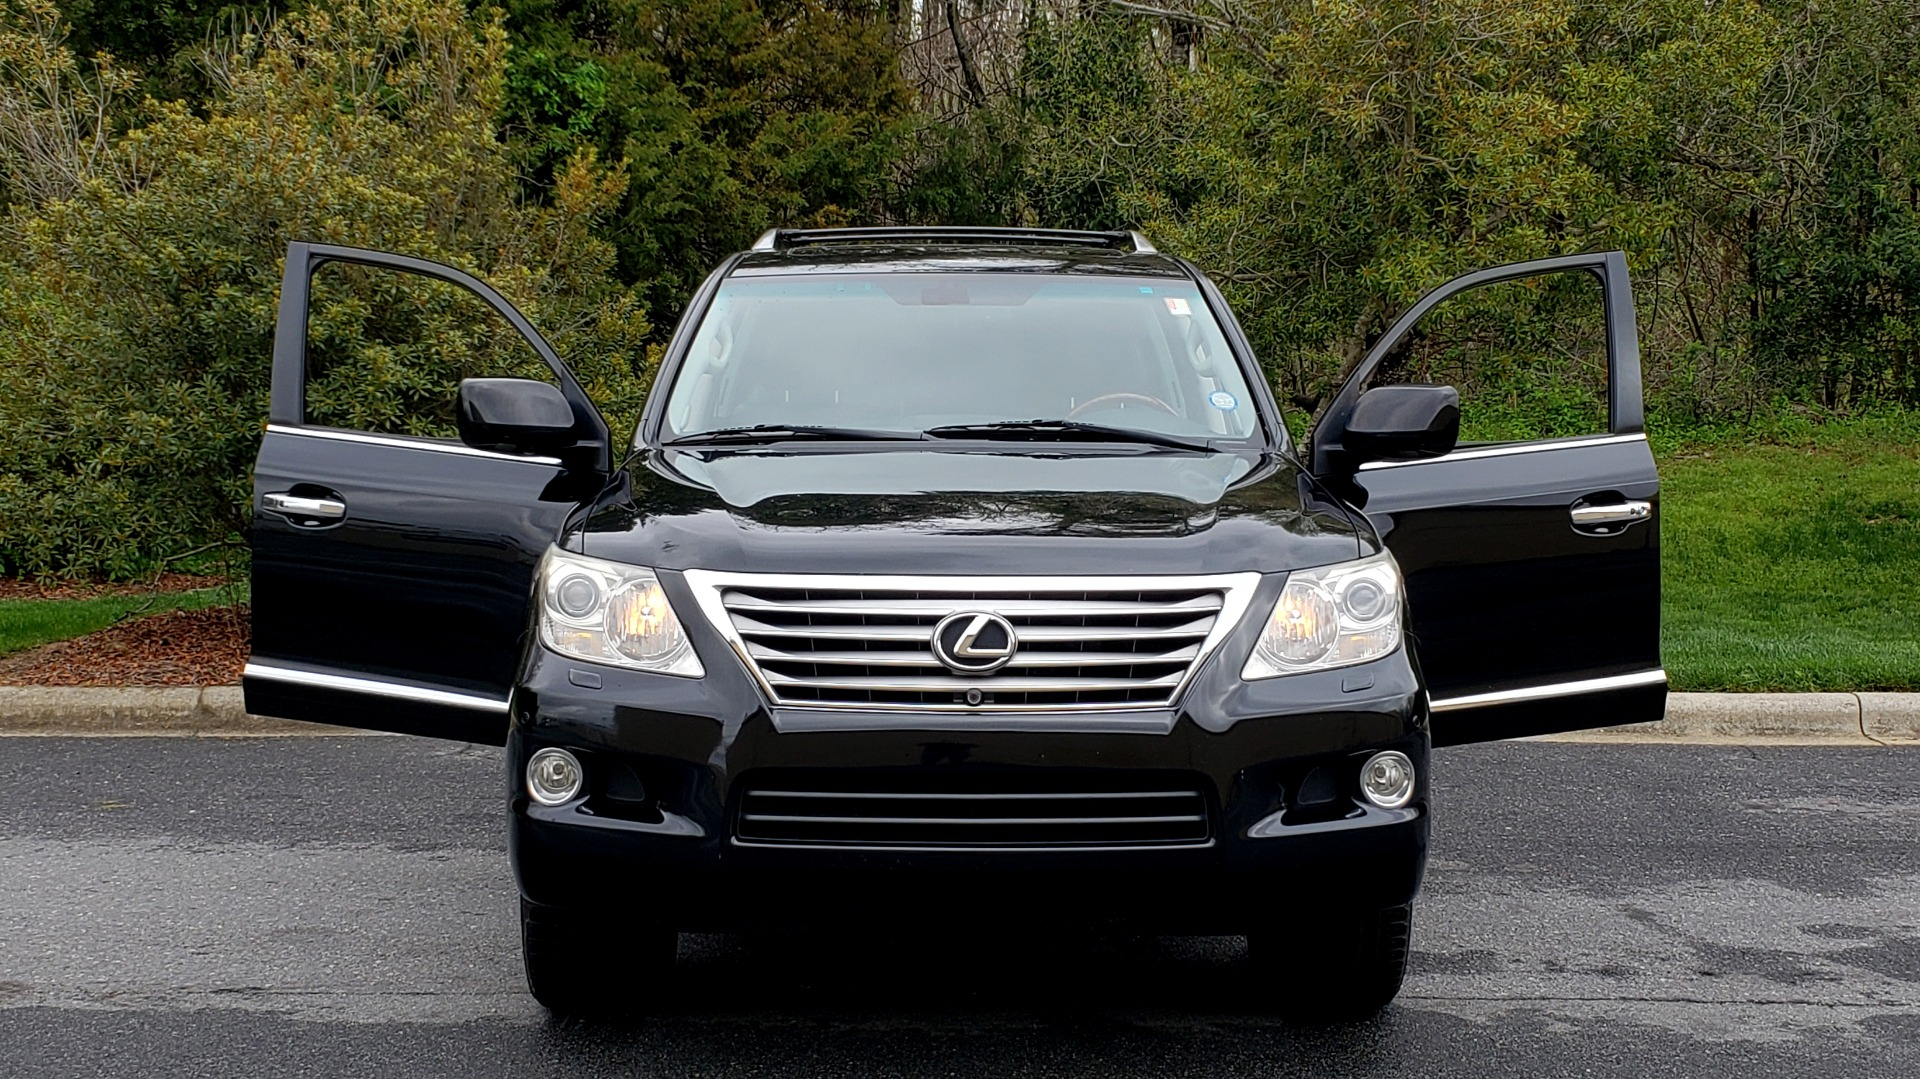 Used 2008 Lexus LX 570 4WD / TECH PKG / NAV / SUNROOF / MARK LEVINSON / PARK ASST for sale $22,995 at Formula Imports in Charlotte NC 28227 20